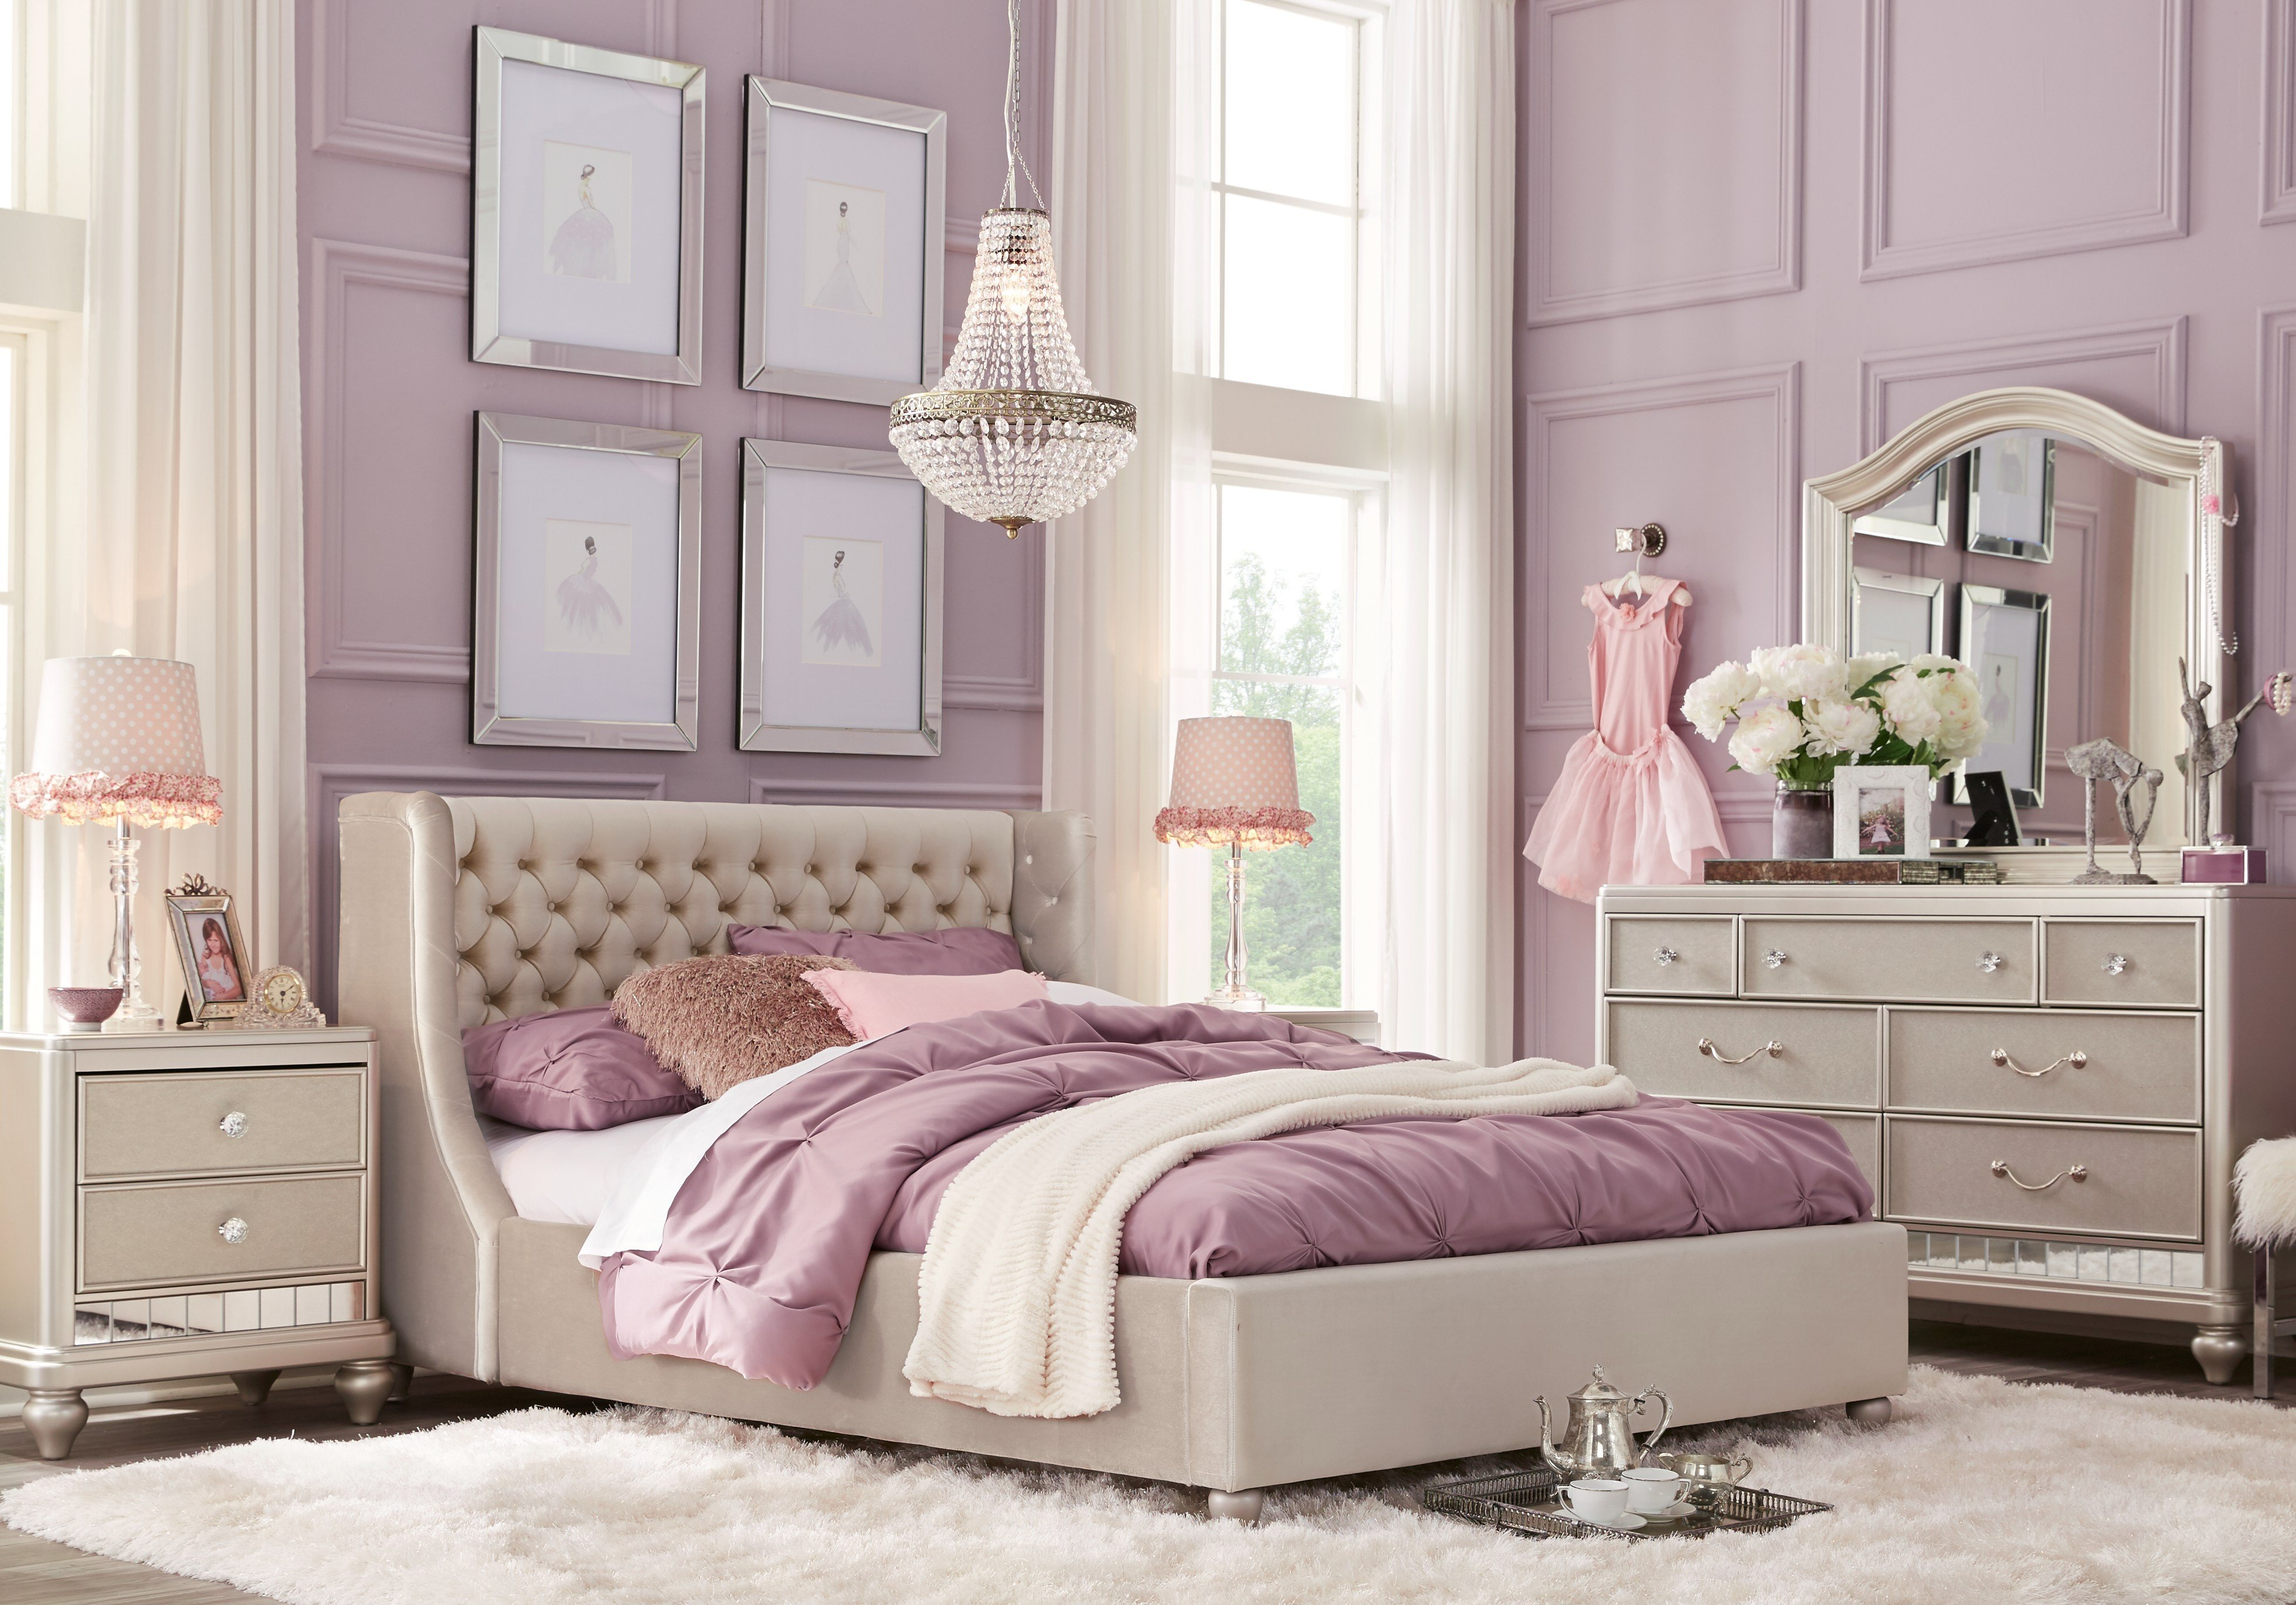 Best Sofia Vergara Petit Paris Champagne 4 Pc Full Bedroom With With Pictures